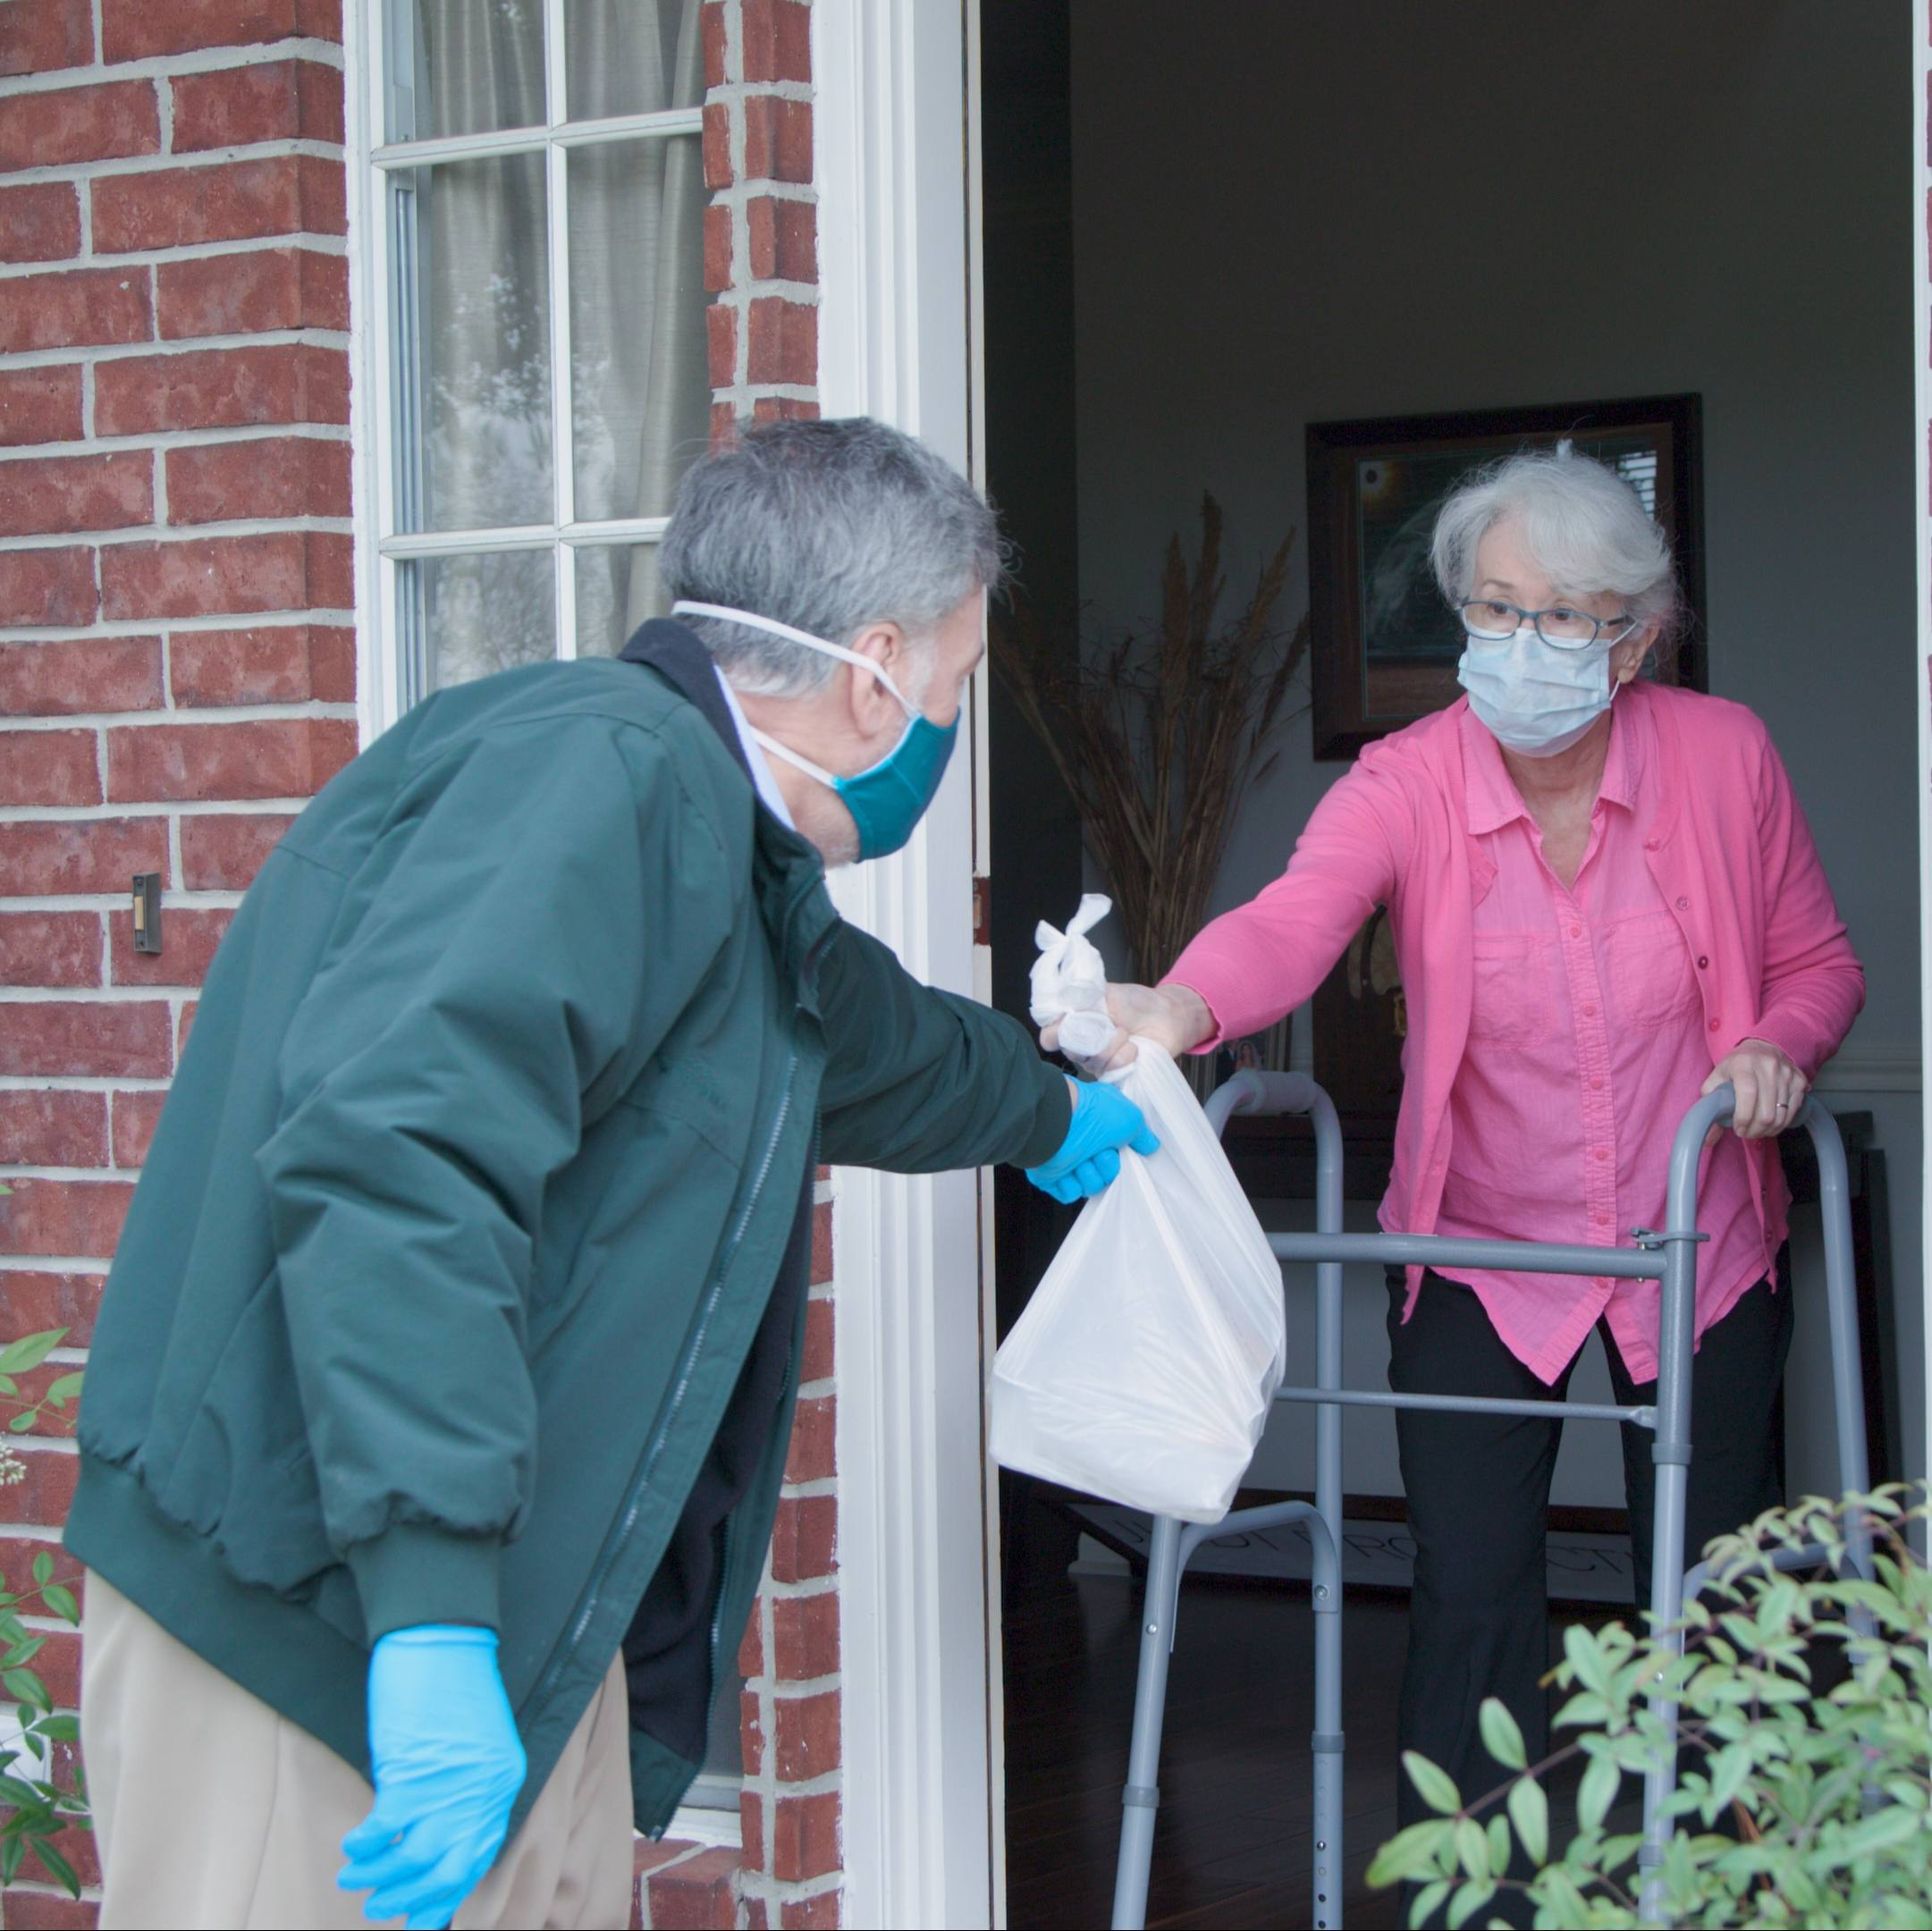 a white middle aged man wearing a mask and gloves delievering food to an older white woman, also wearing a mask, at her front door during COVID-19 pandemic